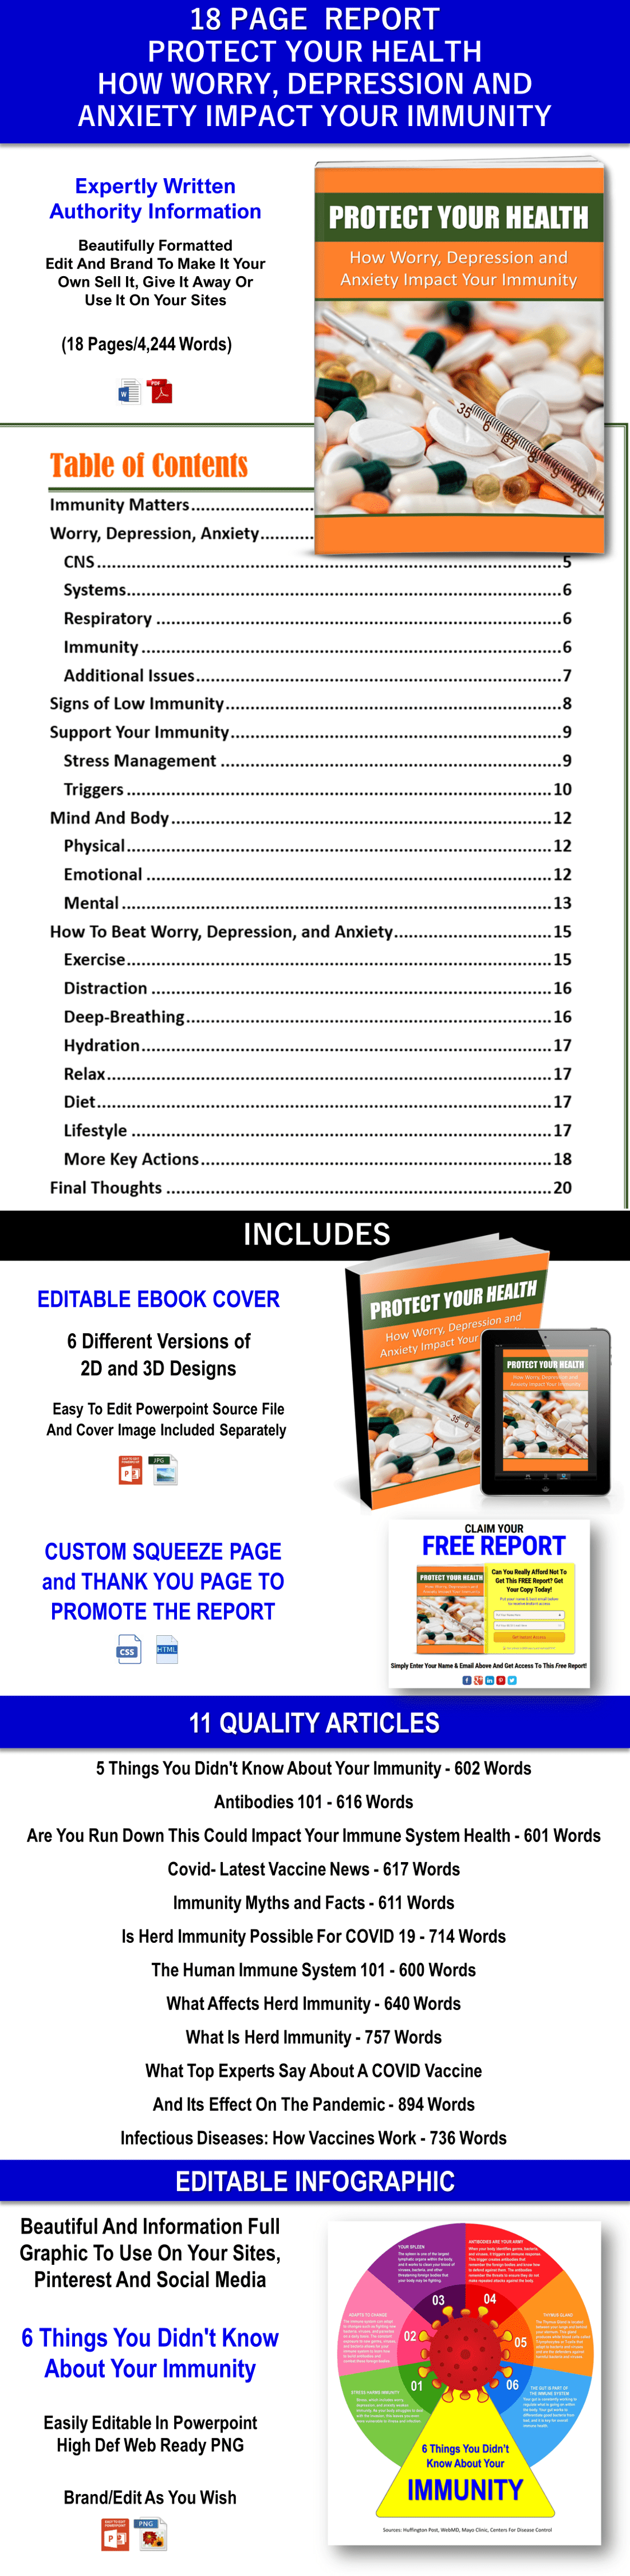 Protect Your Health - Immunity Report and Articles - PLR Rights